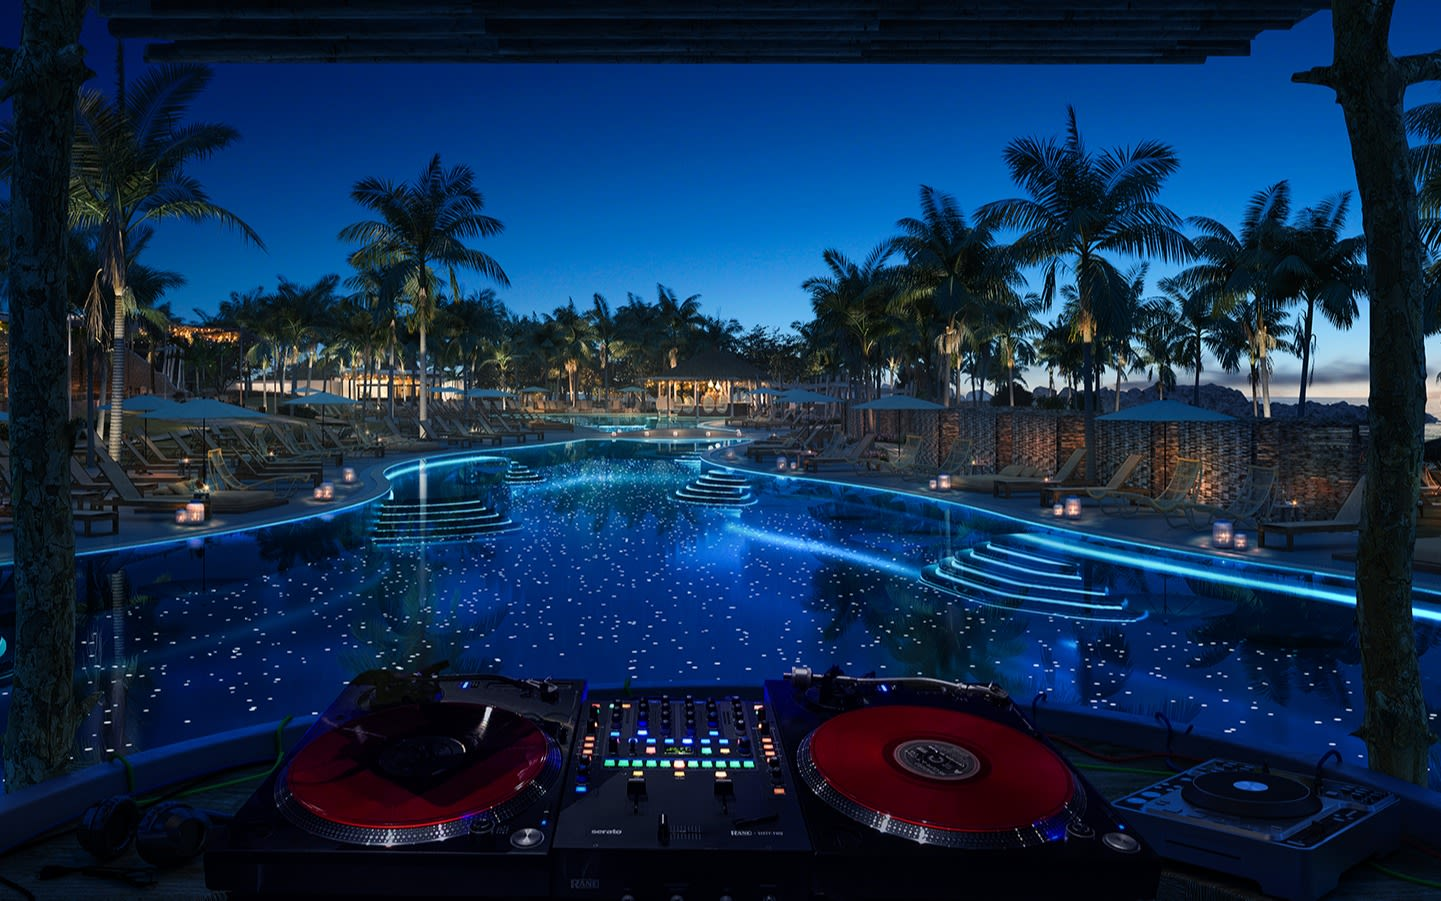 A view looking out to the pool area from the DJ booth at the Beach Club Bimini